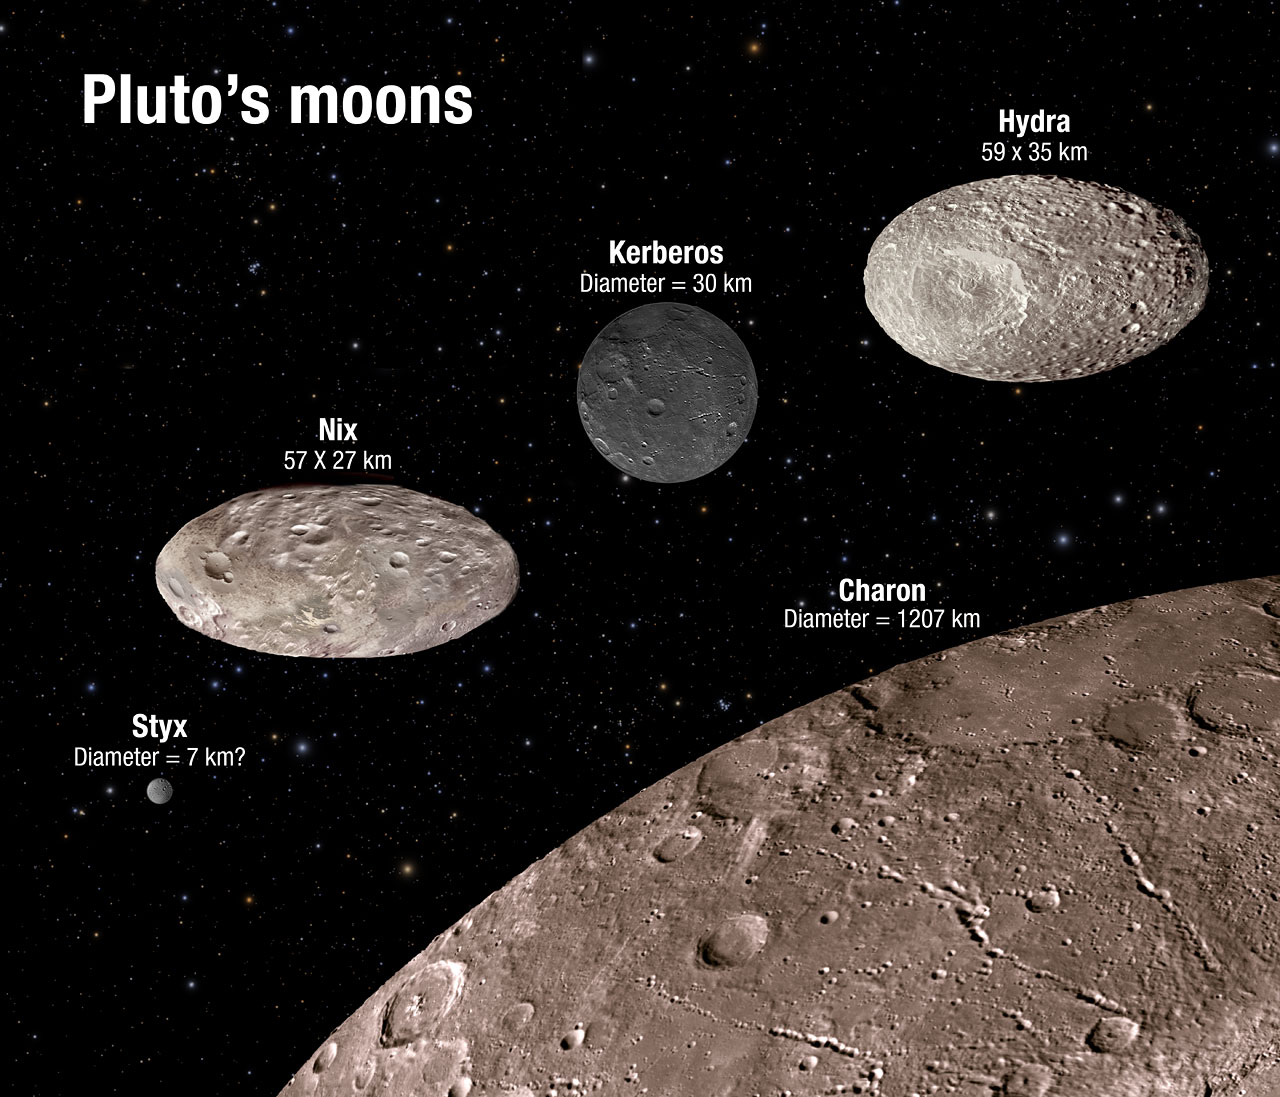 Kerberos Moon Of Plluto: Pluto's Moons Are Even Weirder Than Thought